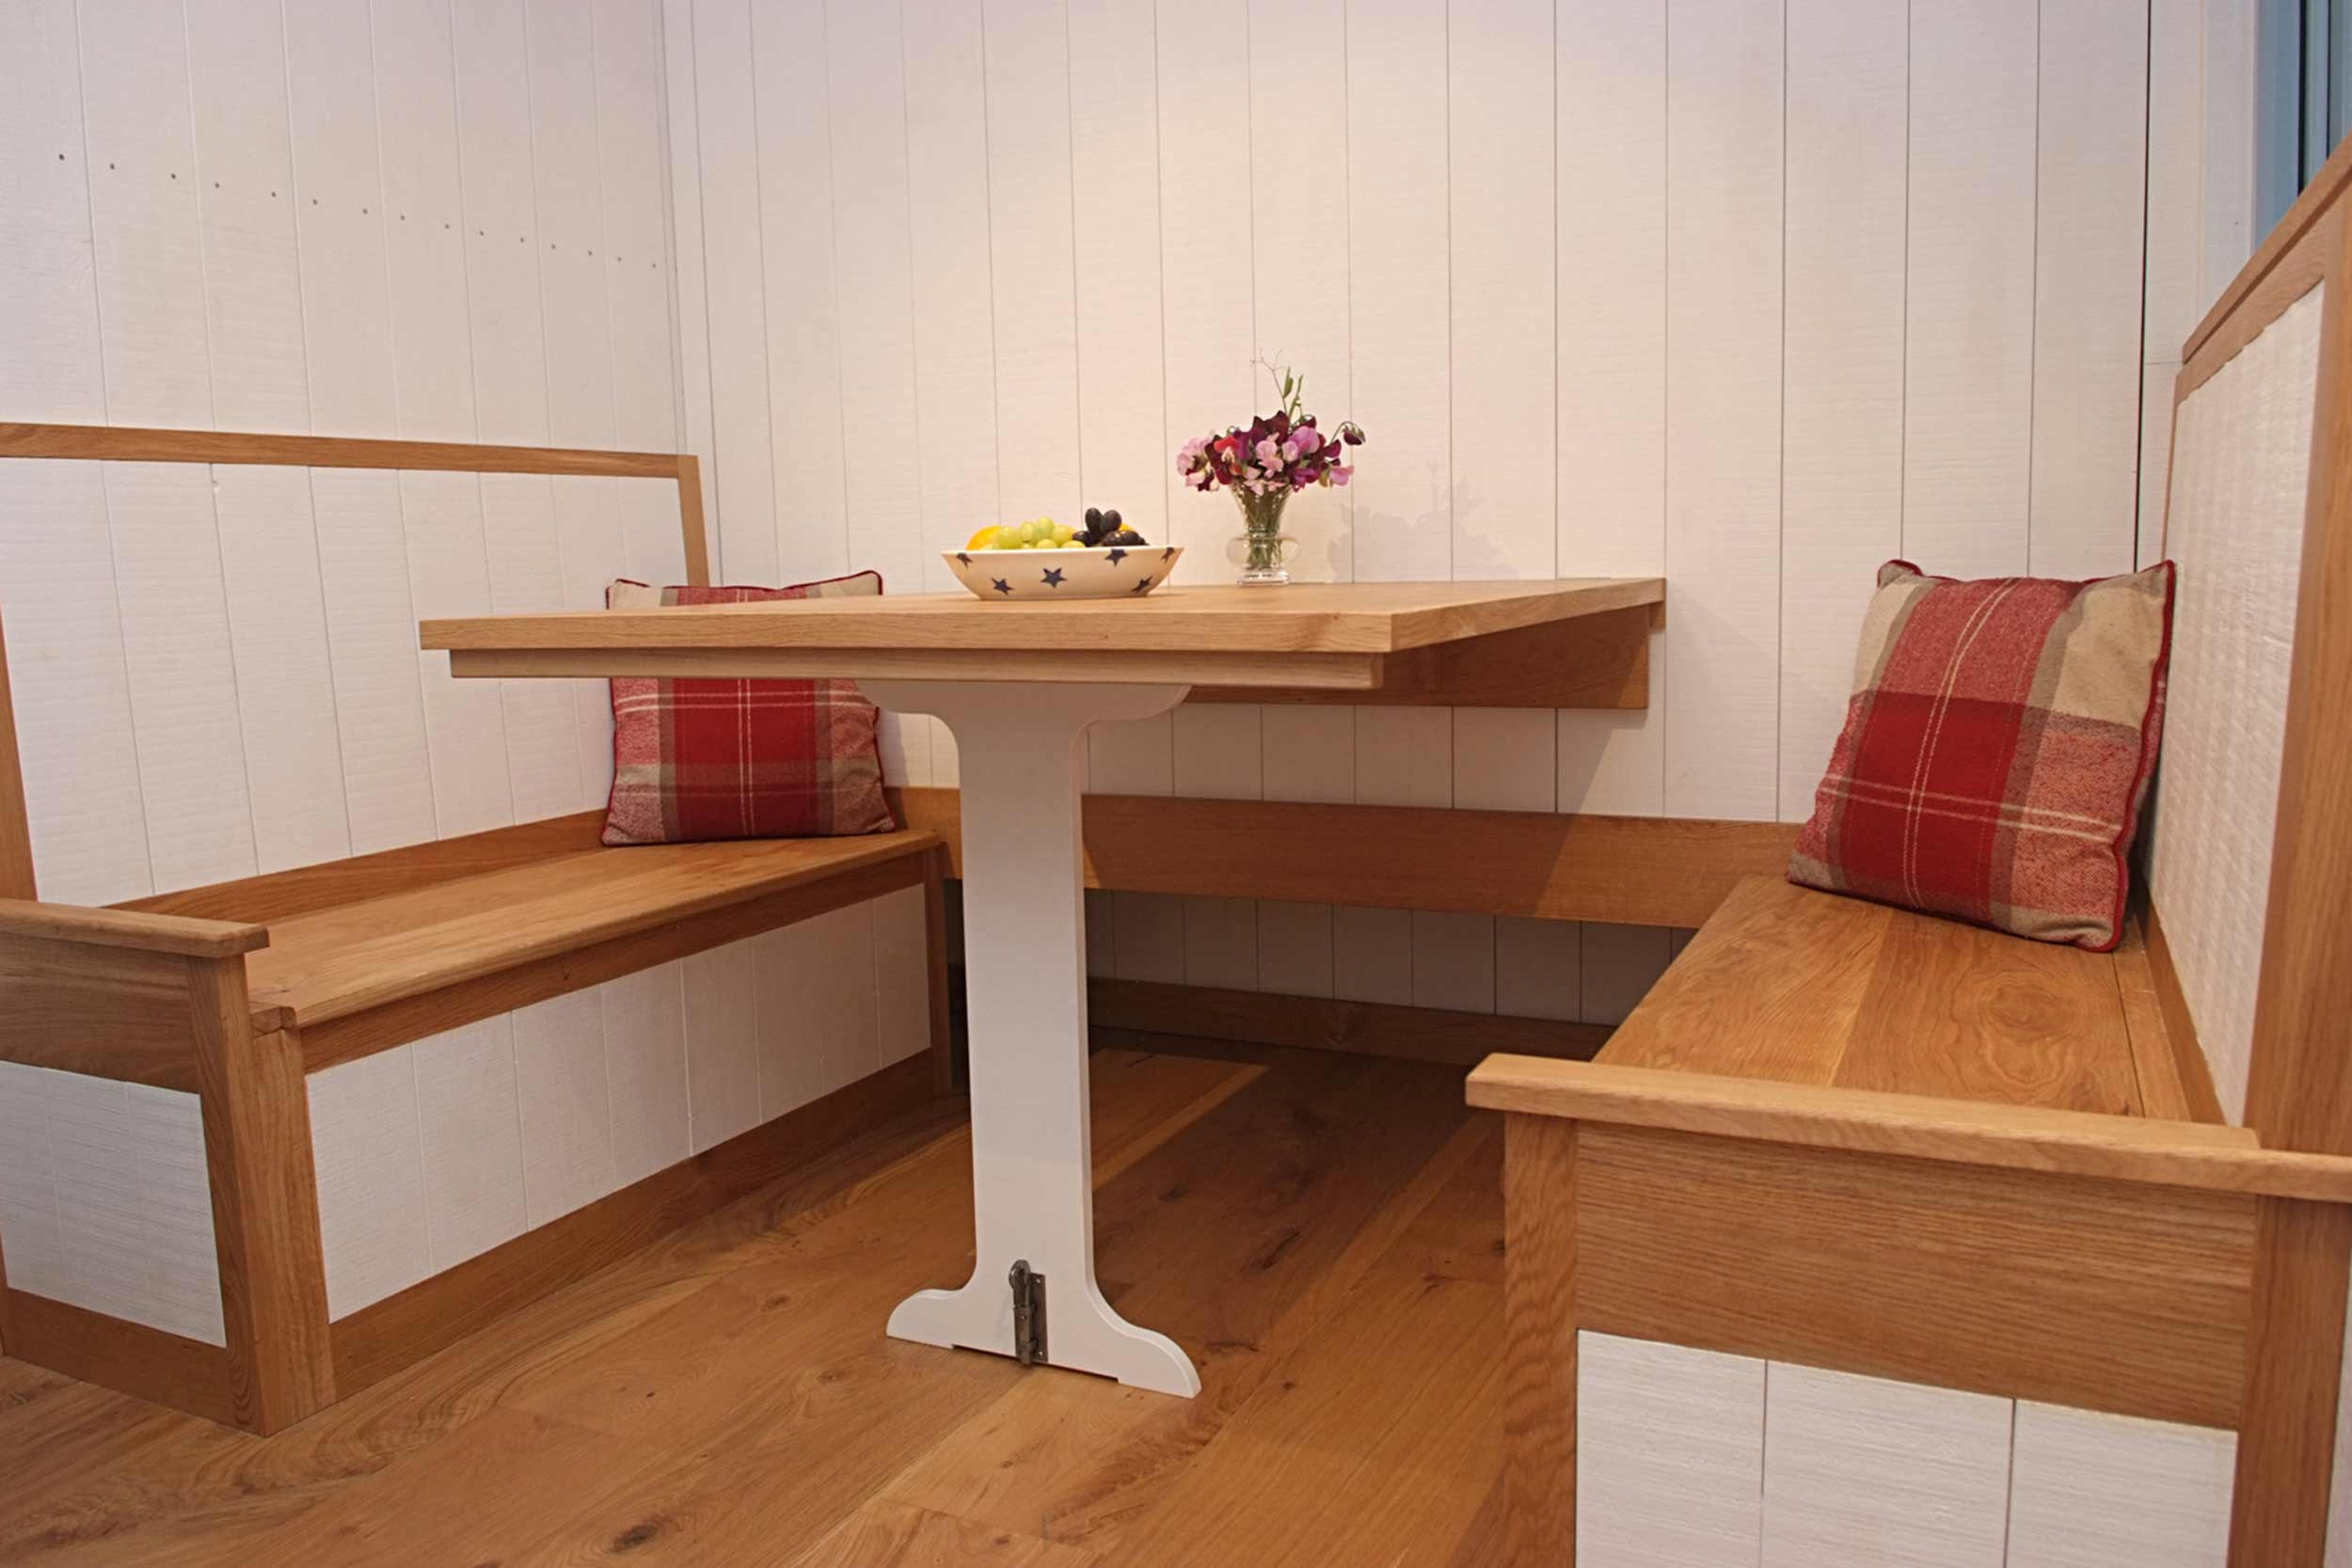 Shepherds Hut Dining Area with Fitted Seating and Drop Down Table